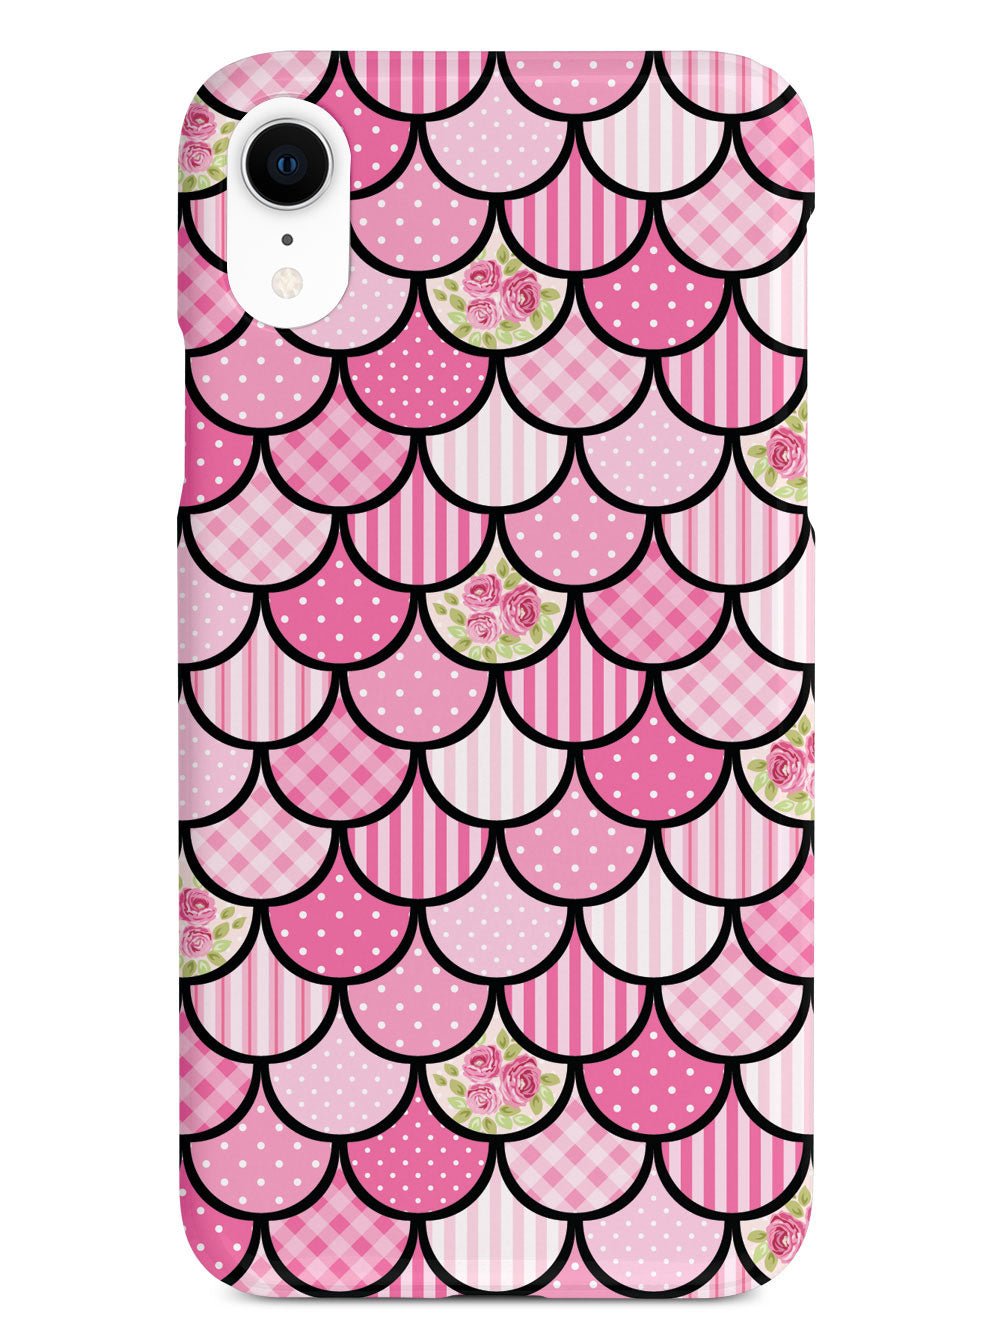 Mermaid Scales - Pink Patchwork - Black Case